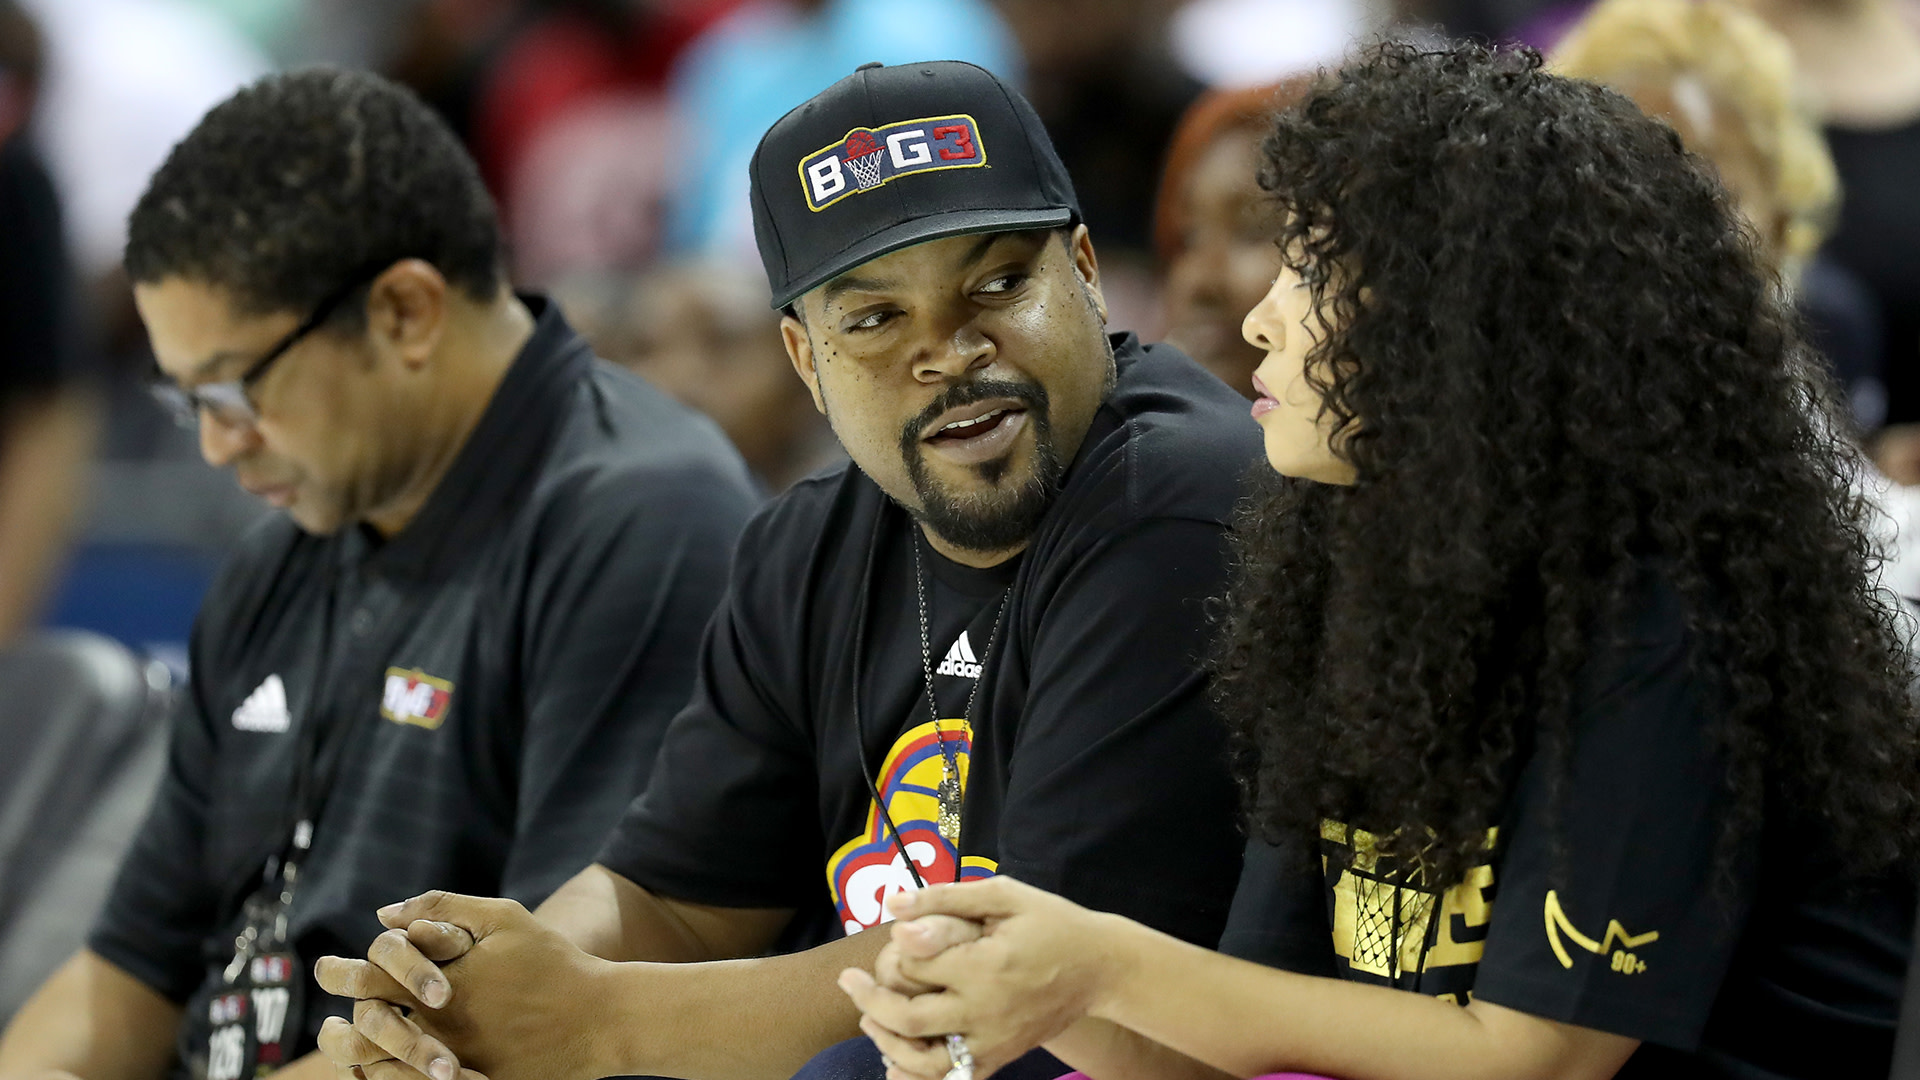 Ice Cube Responds to Questions About His Contract With Black America Failing to Address Black Women